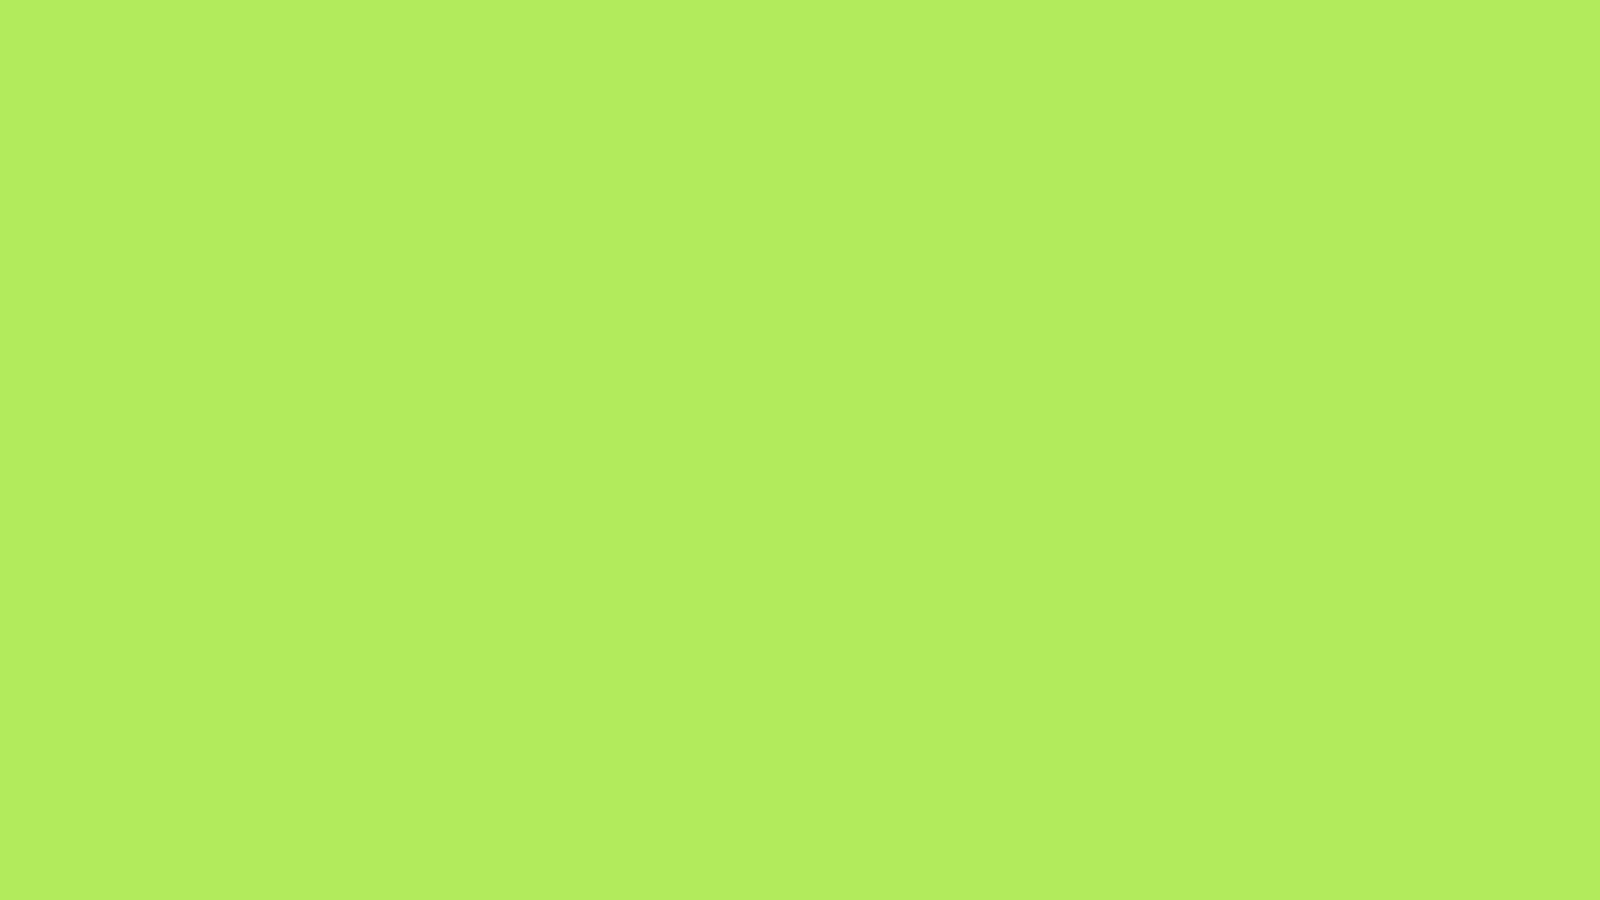 1600x900 Inchworm Solid Color Background